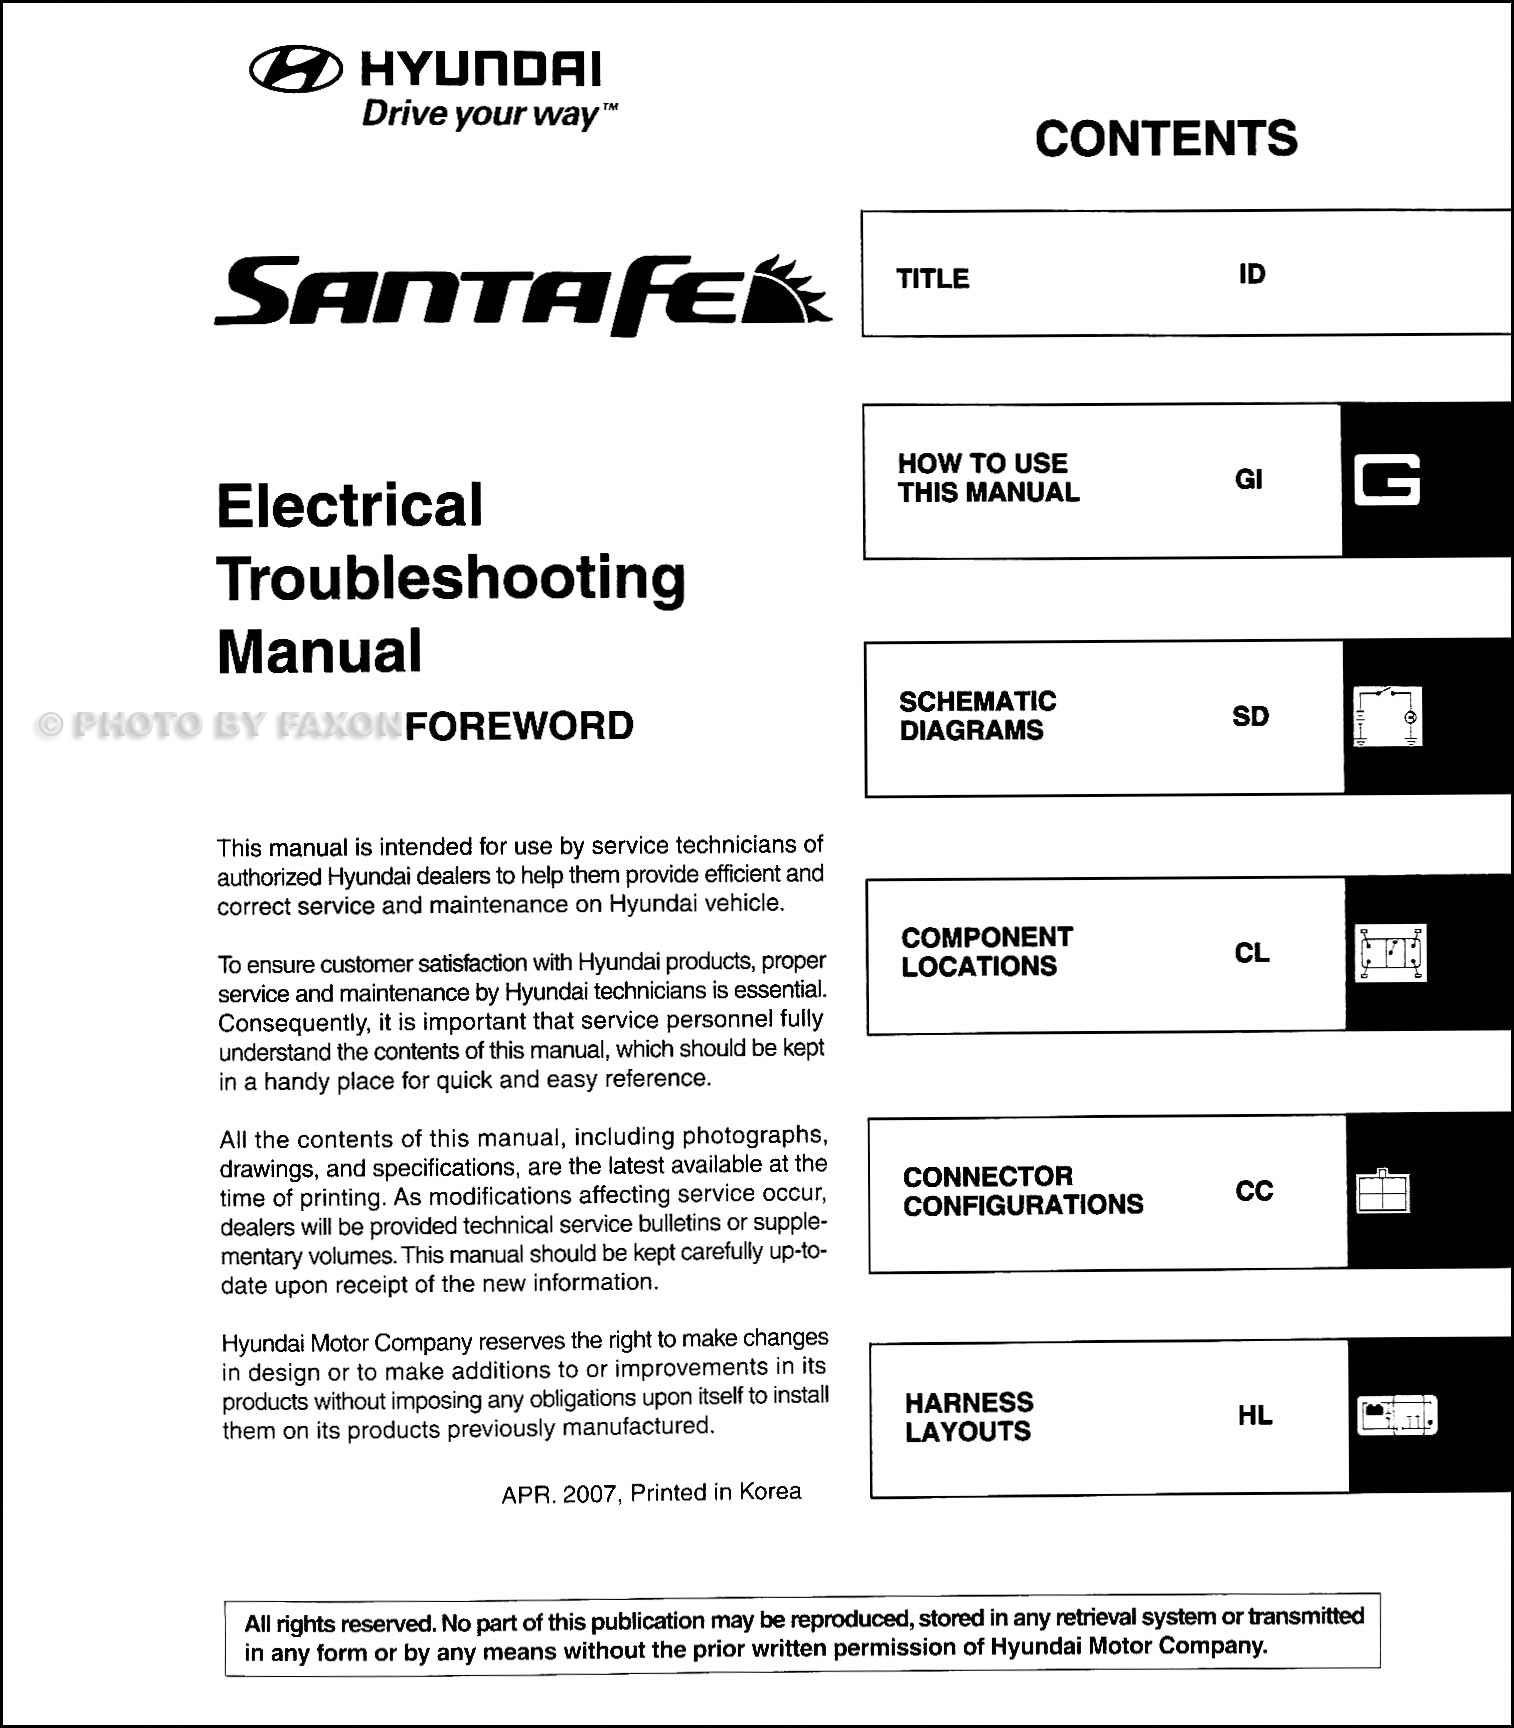 2008 Hyundai Santa Fe Electrical Troubleshooting Manual Original Hyundai  Santa Fe Door Speakers 2014 Hyundai Santa Fe Wiring Diagram